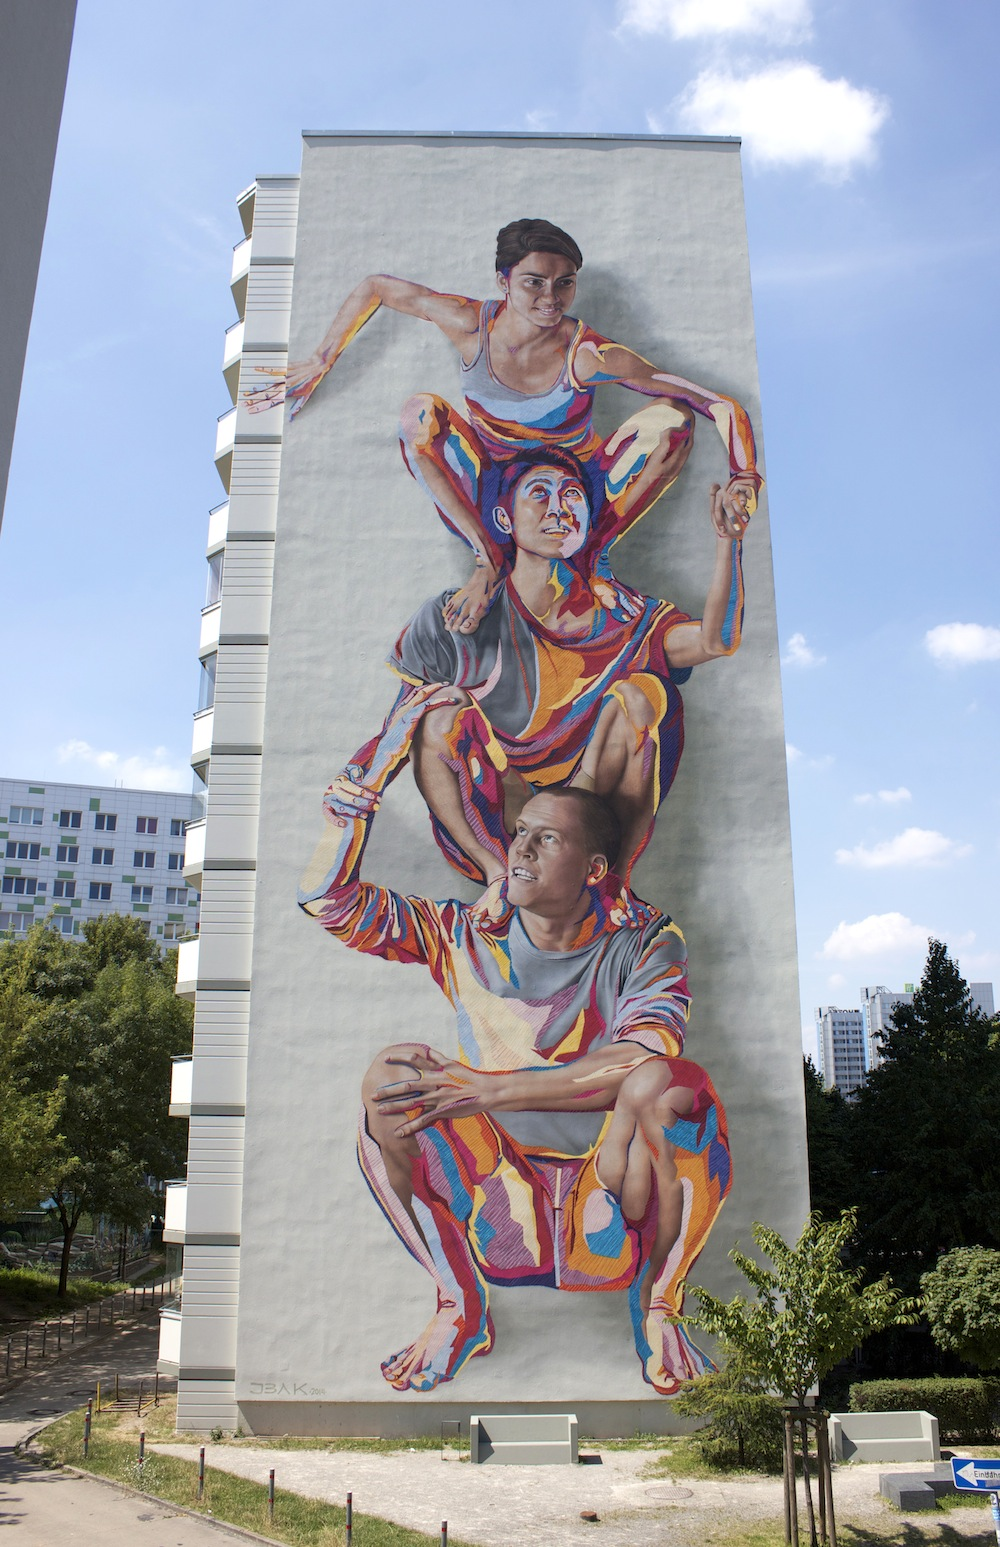 James Bullough |Street Art